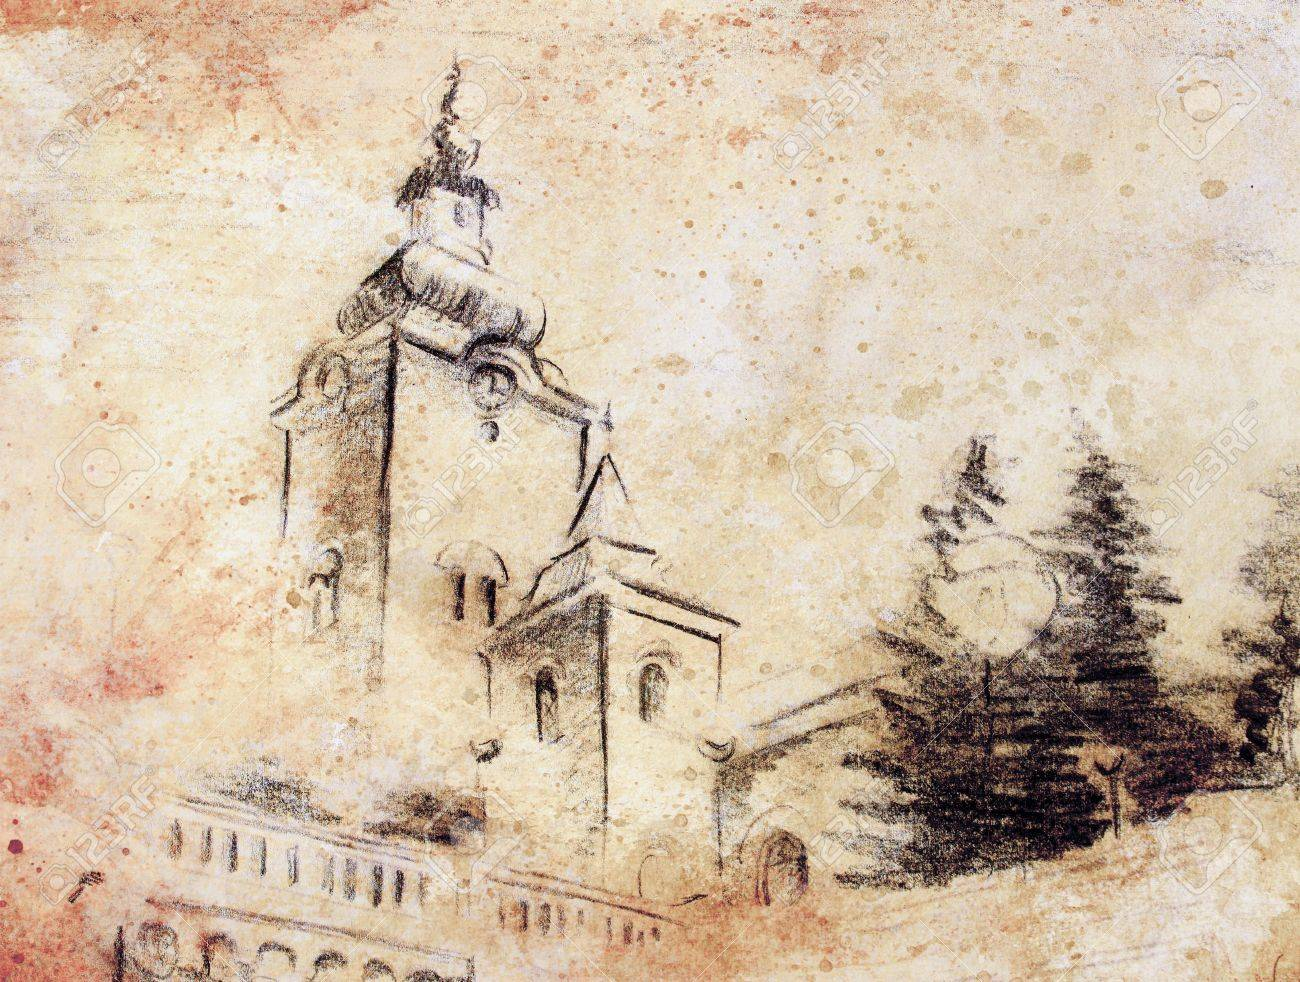 Pencil sketch church drawing on vintage paper